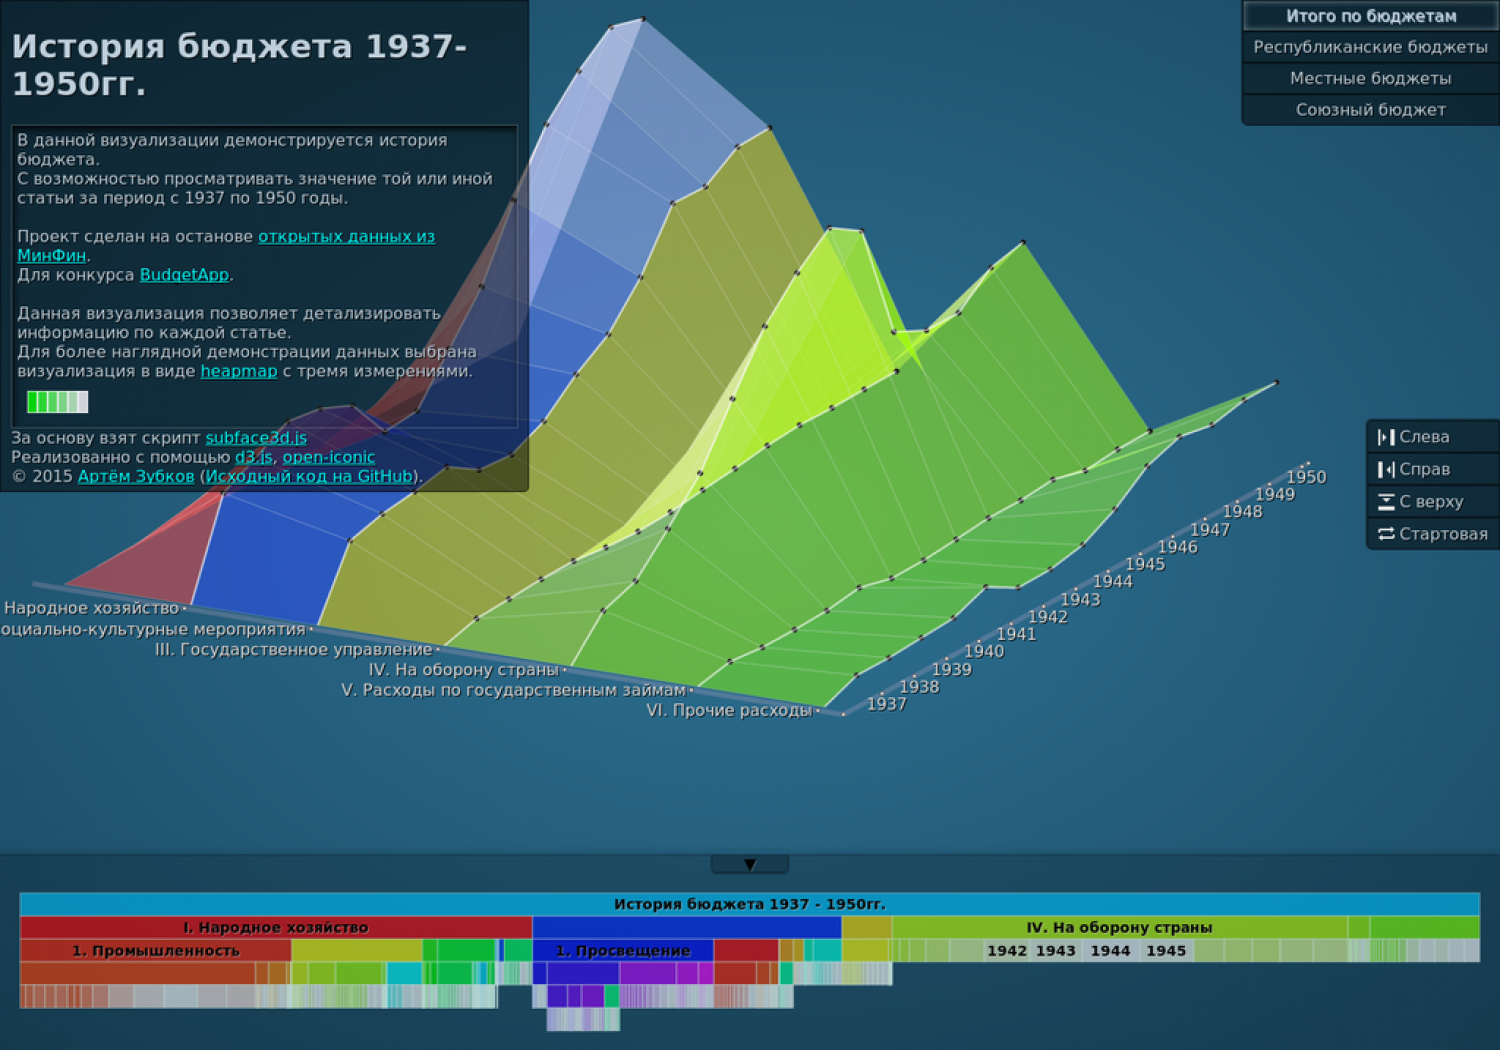 The History of The Russian Budget from 1937-1950 years Infographic